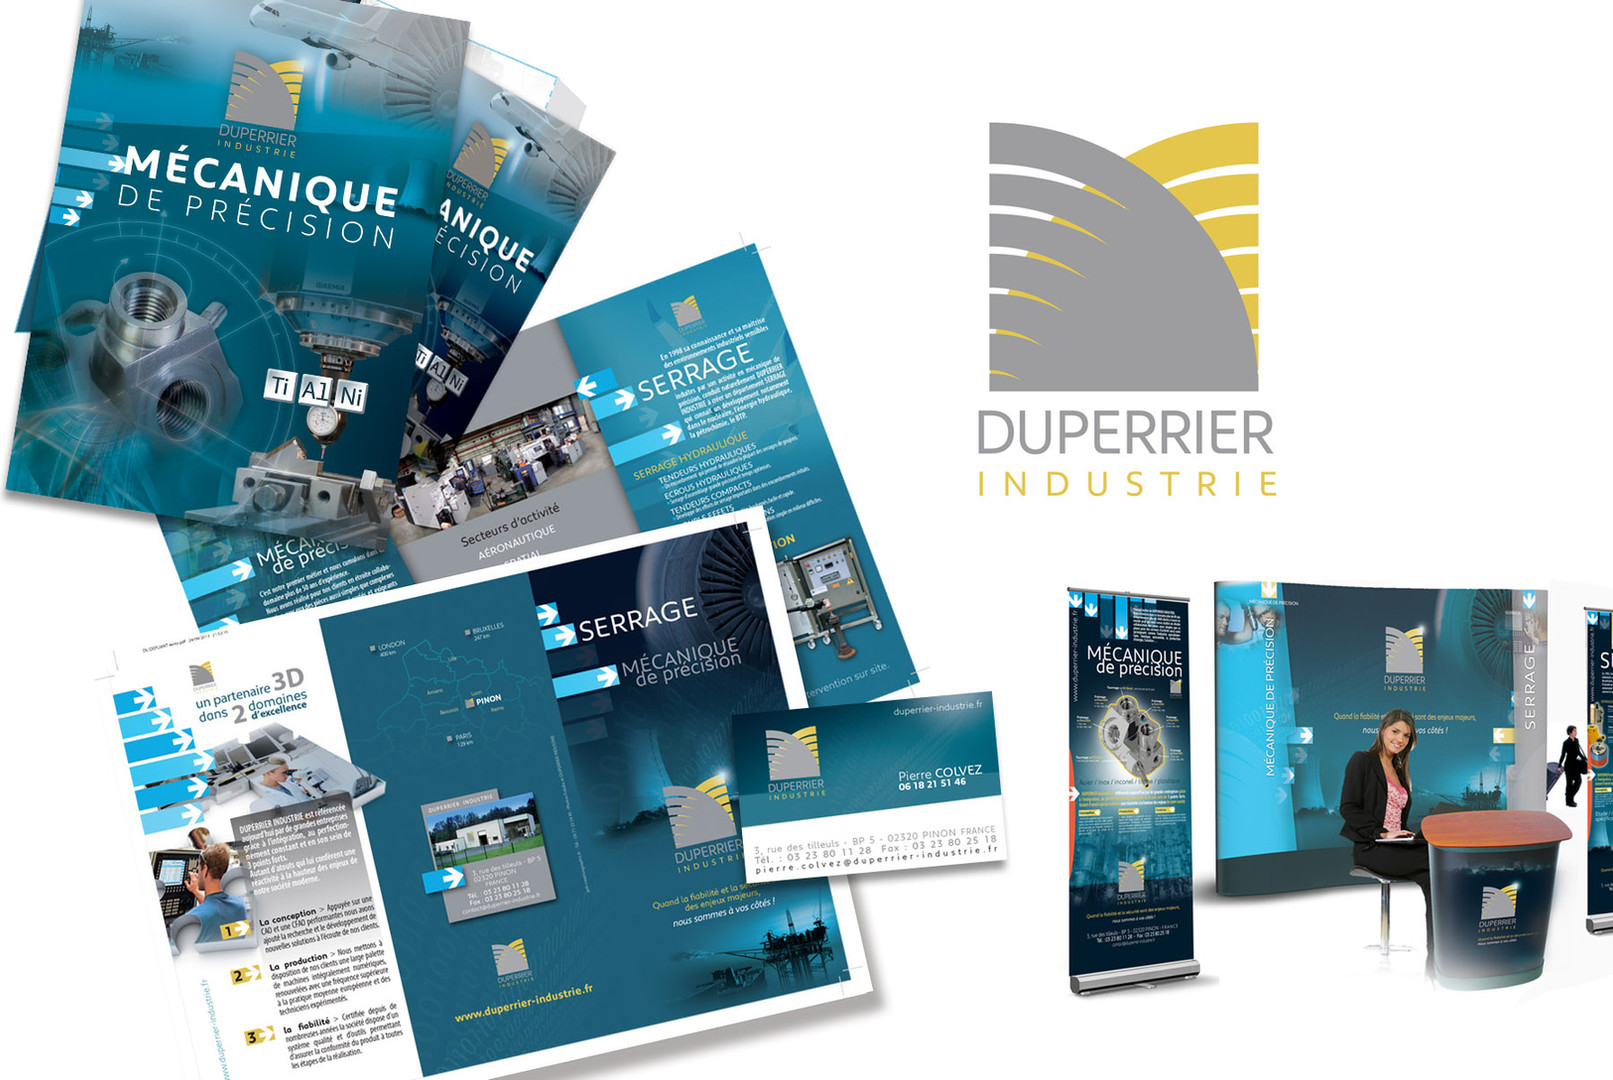 DUPERRIER INDUSTRIE